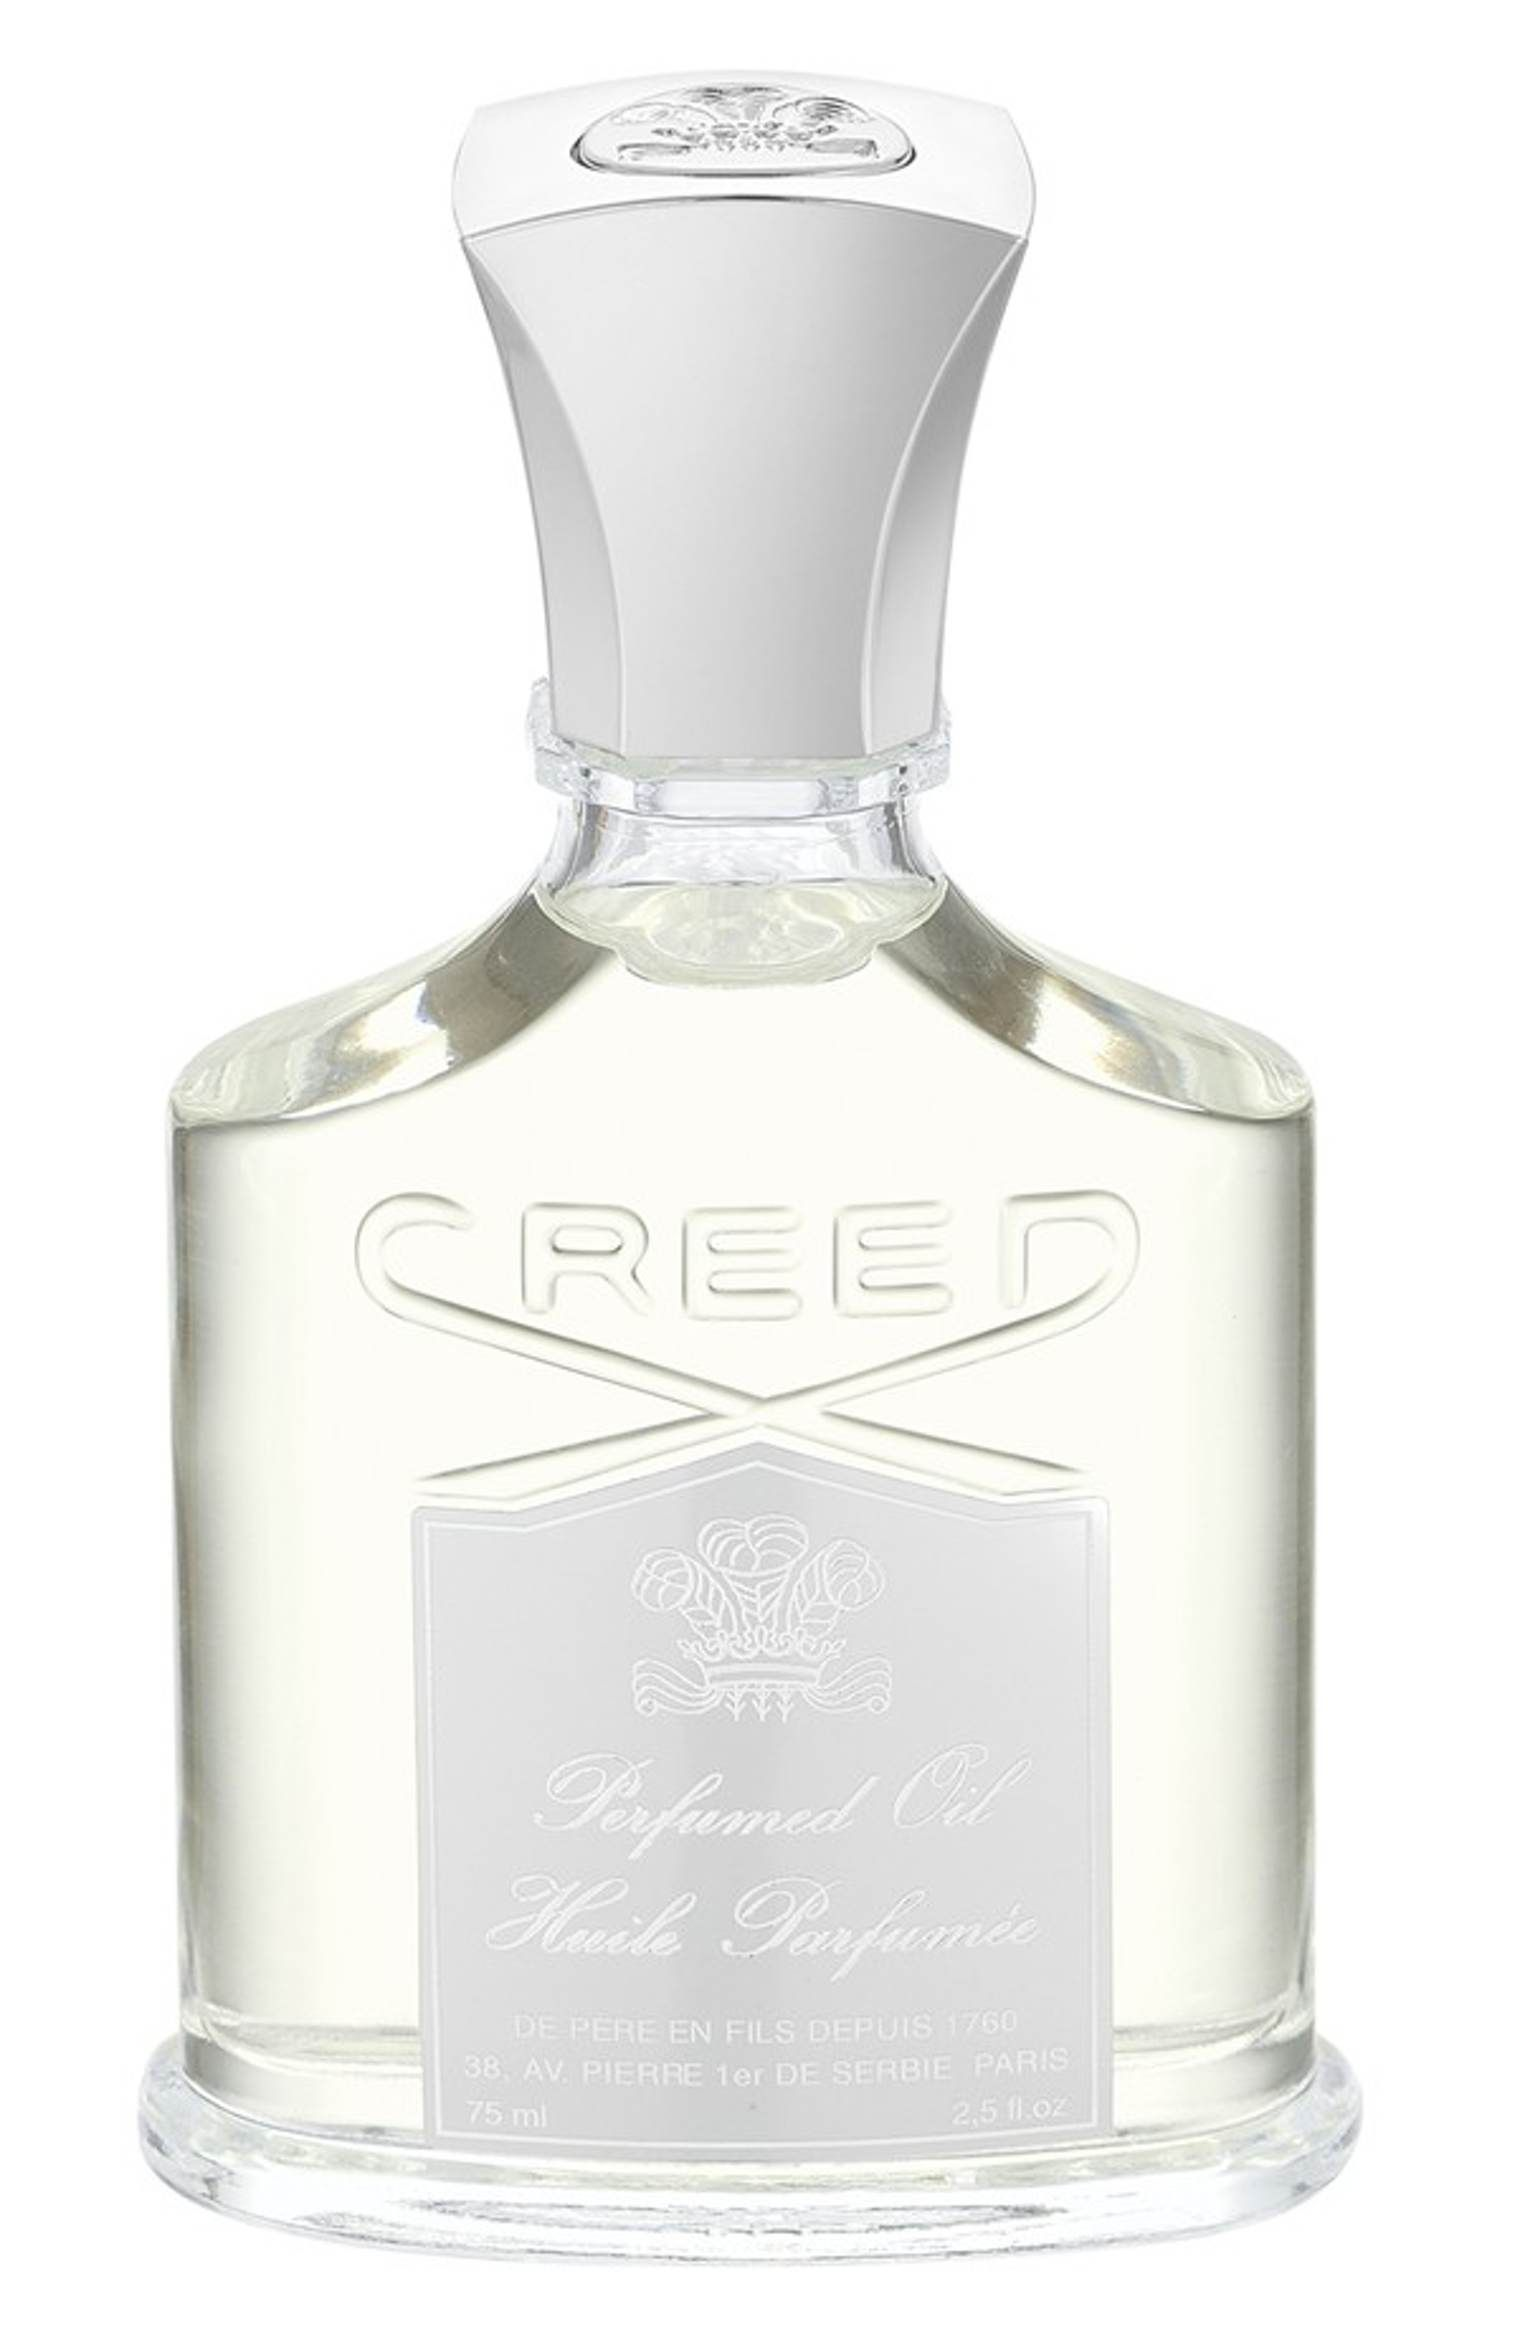 Main Image Creed Spring Flower Perfume Oil Spray Perfume